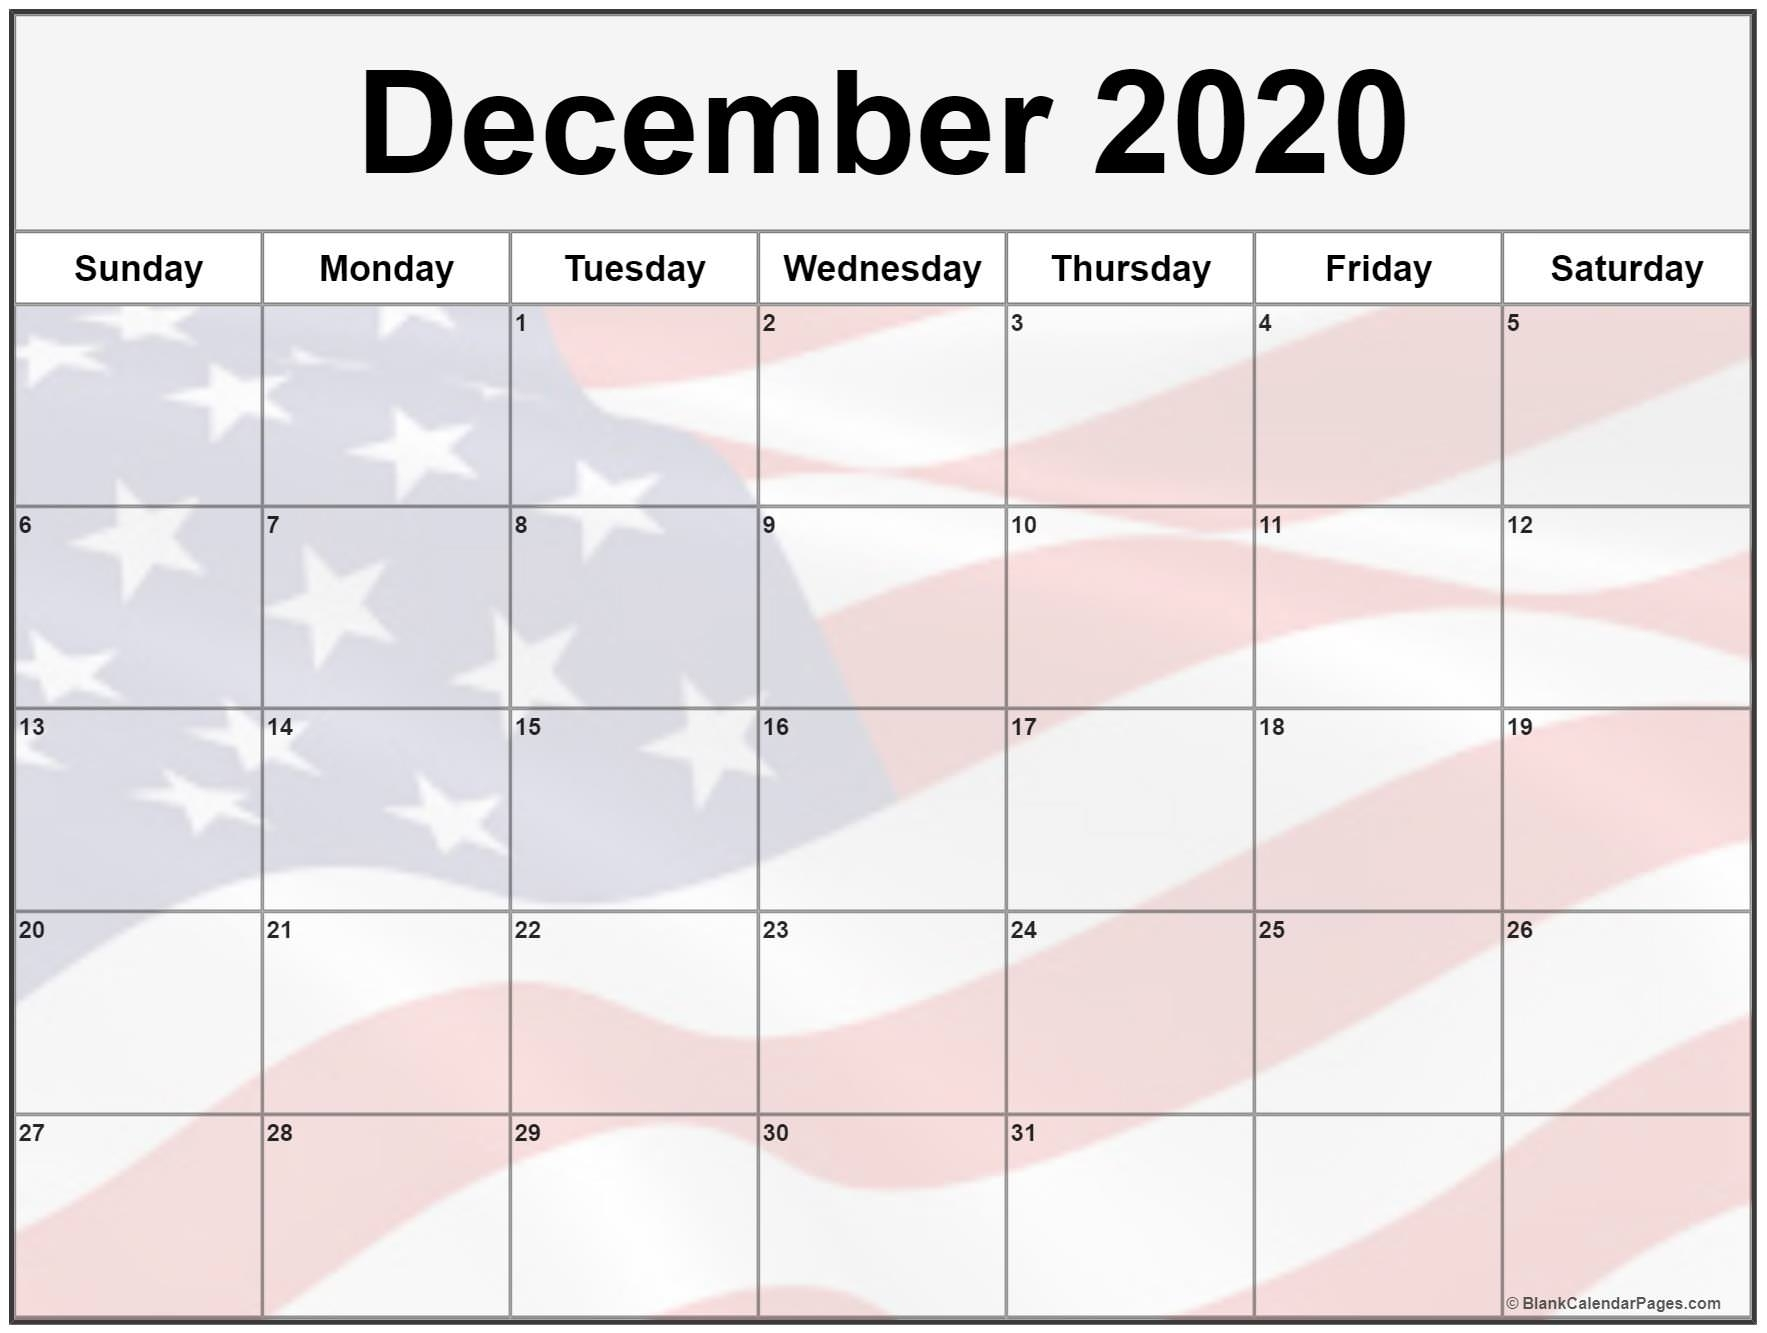 Collection Of December 2020 Photo Calendars With Image Filters.